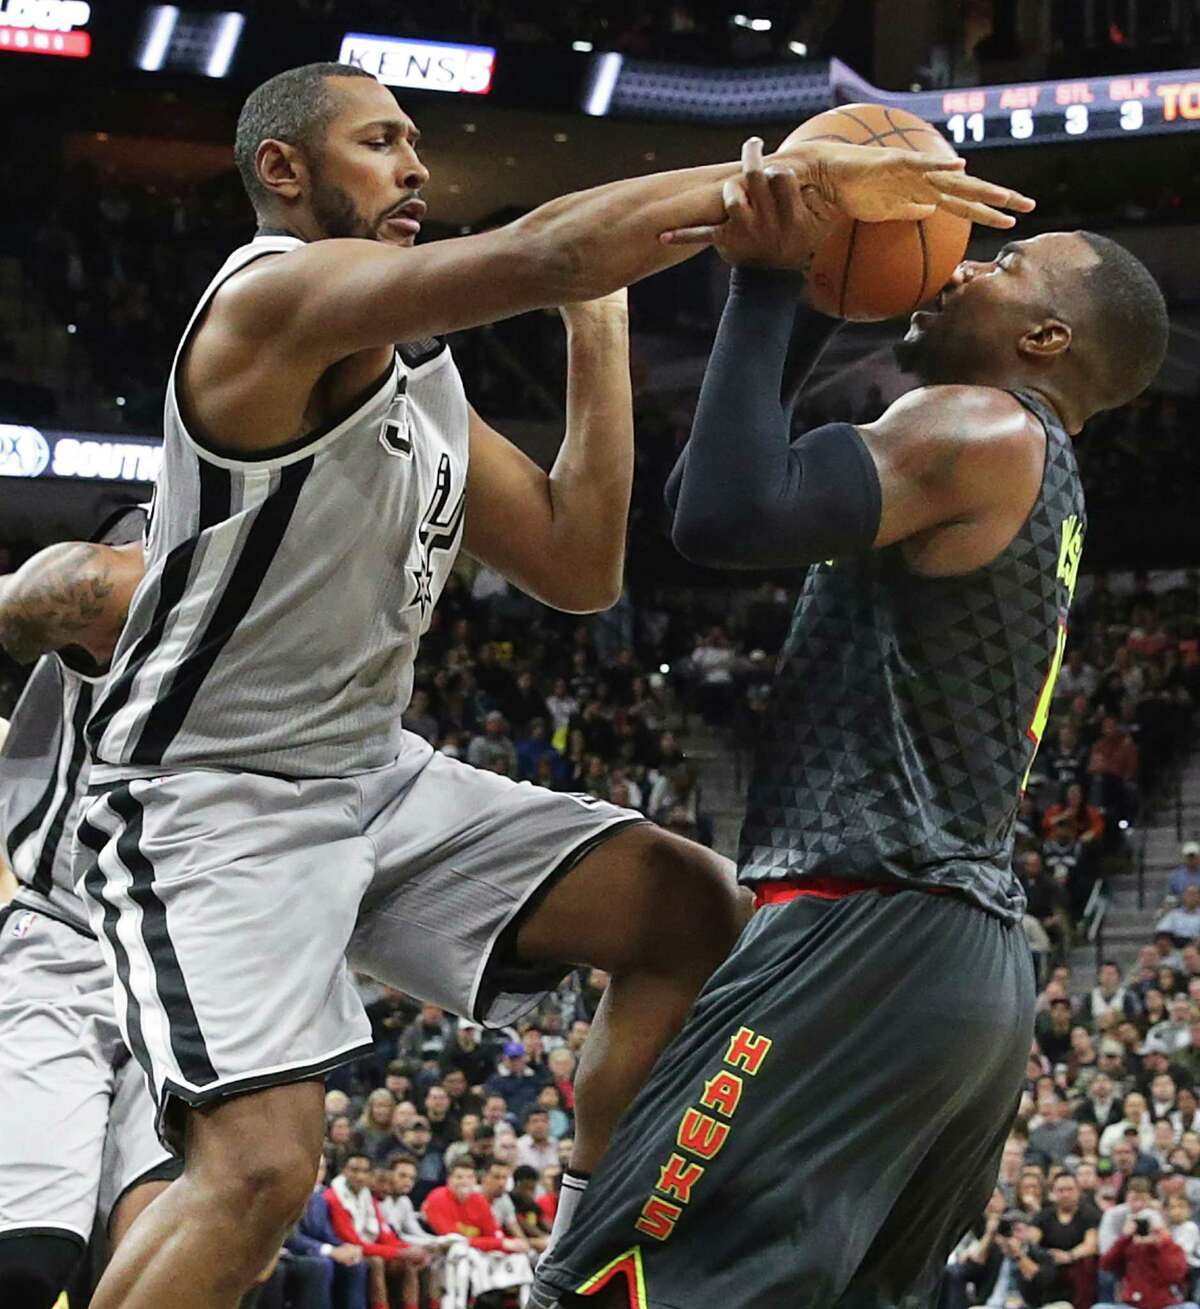 Boris Diaw jams the ball back in the face of Paul Millsap in the first half as the Spurs play the Atlanta Hawks at the AT&T Center on November 28, 2015.